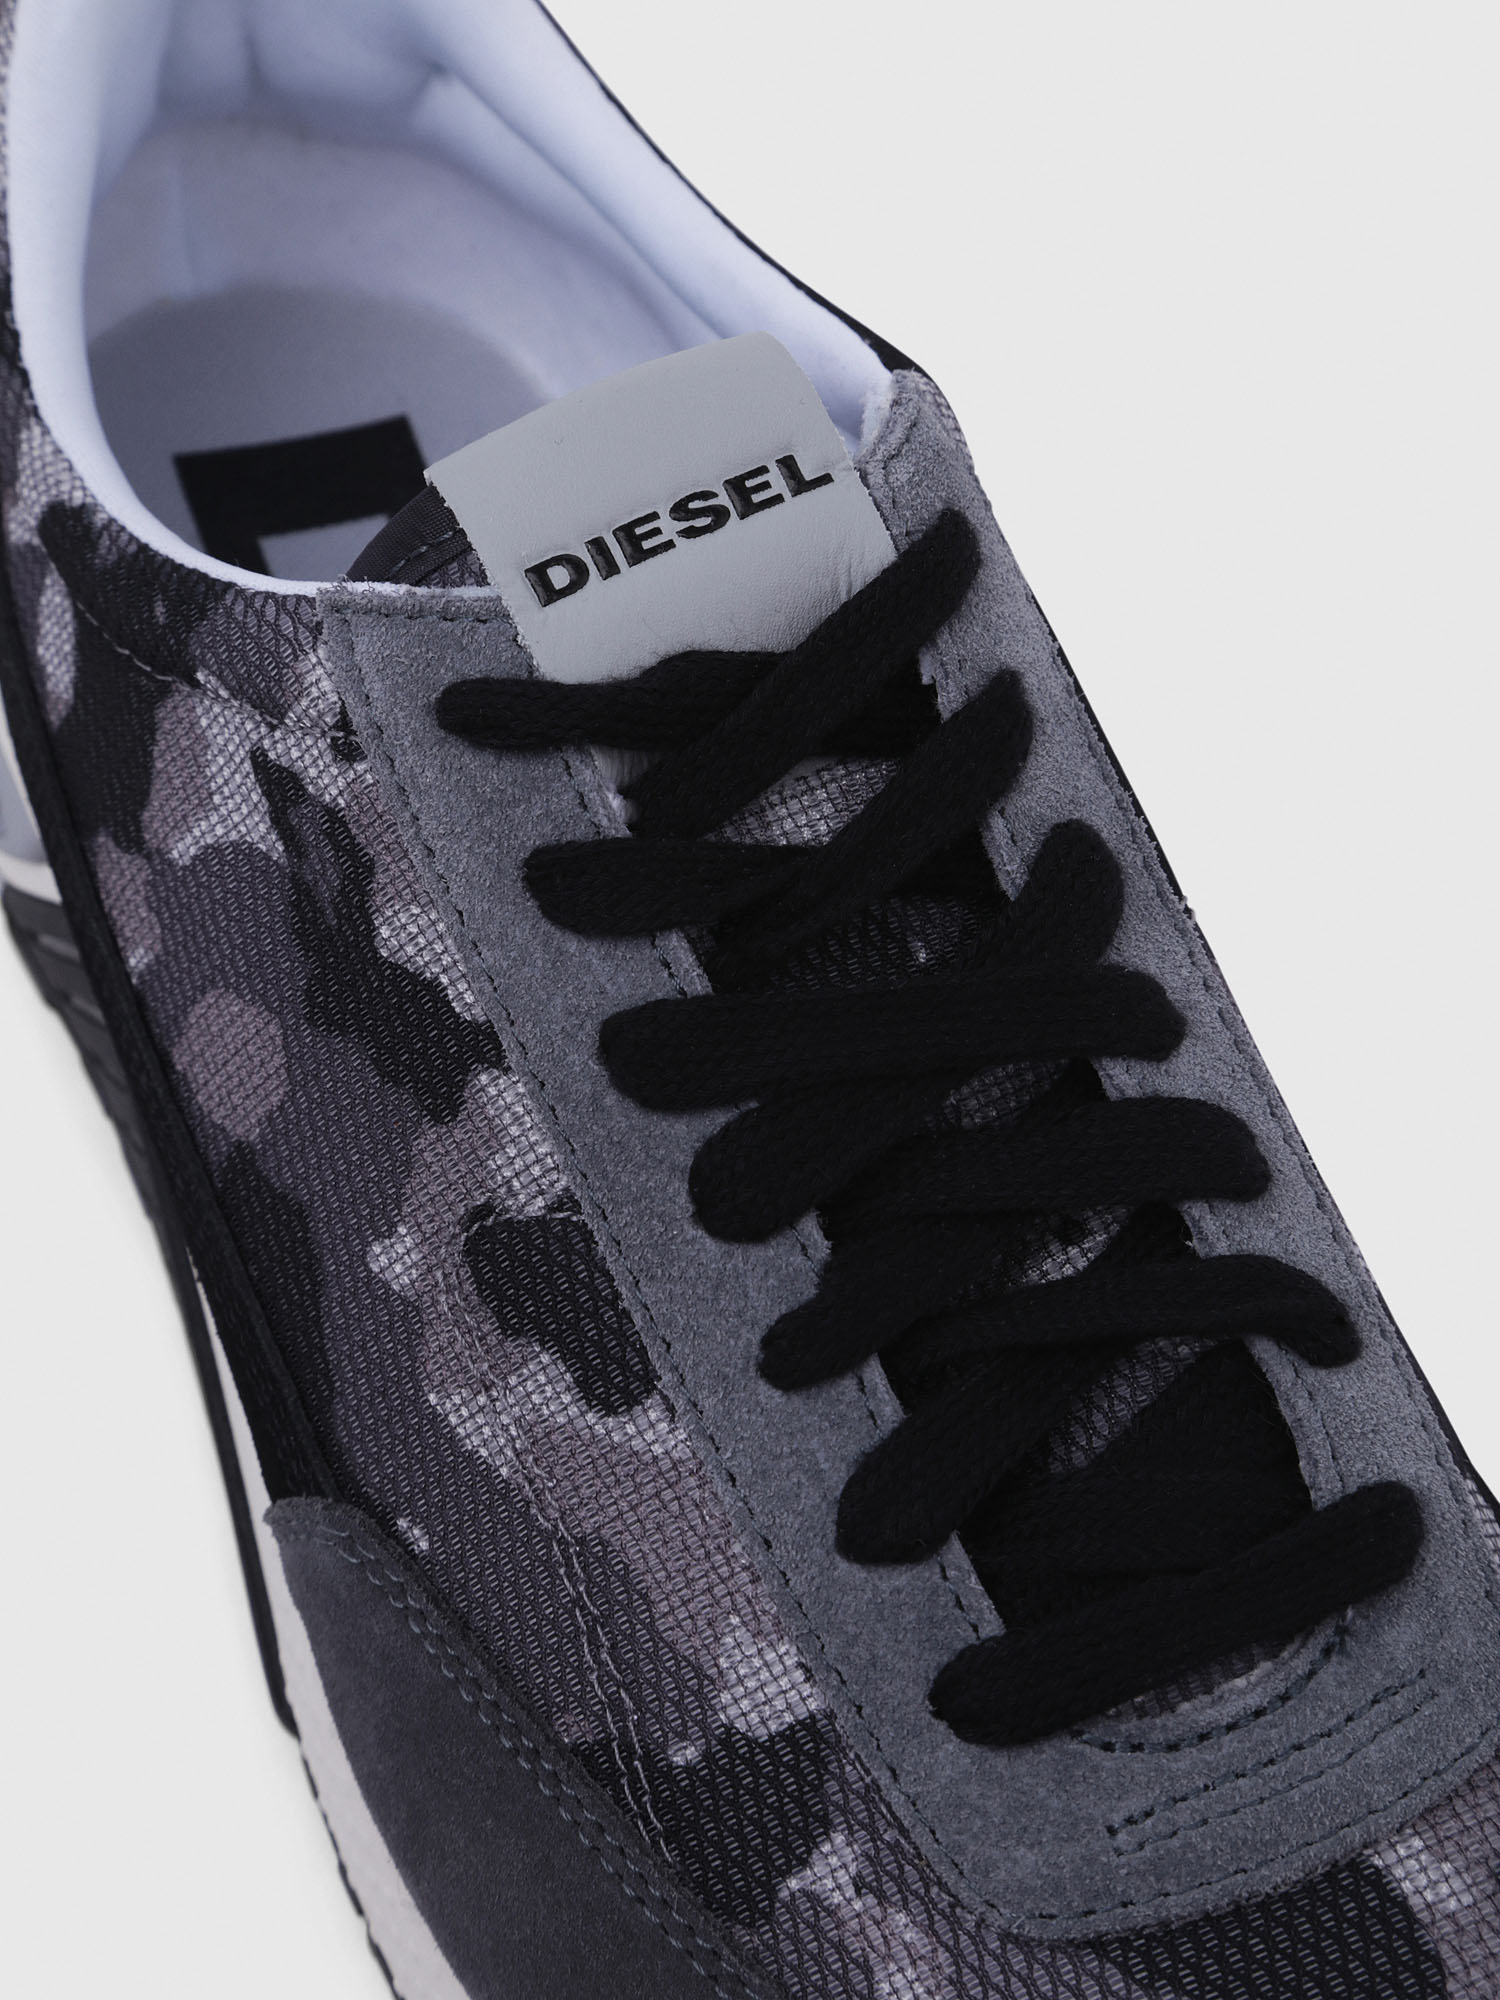 Diesel - S-KB LOW LACE,  - Sneakers - Image 4